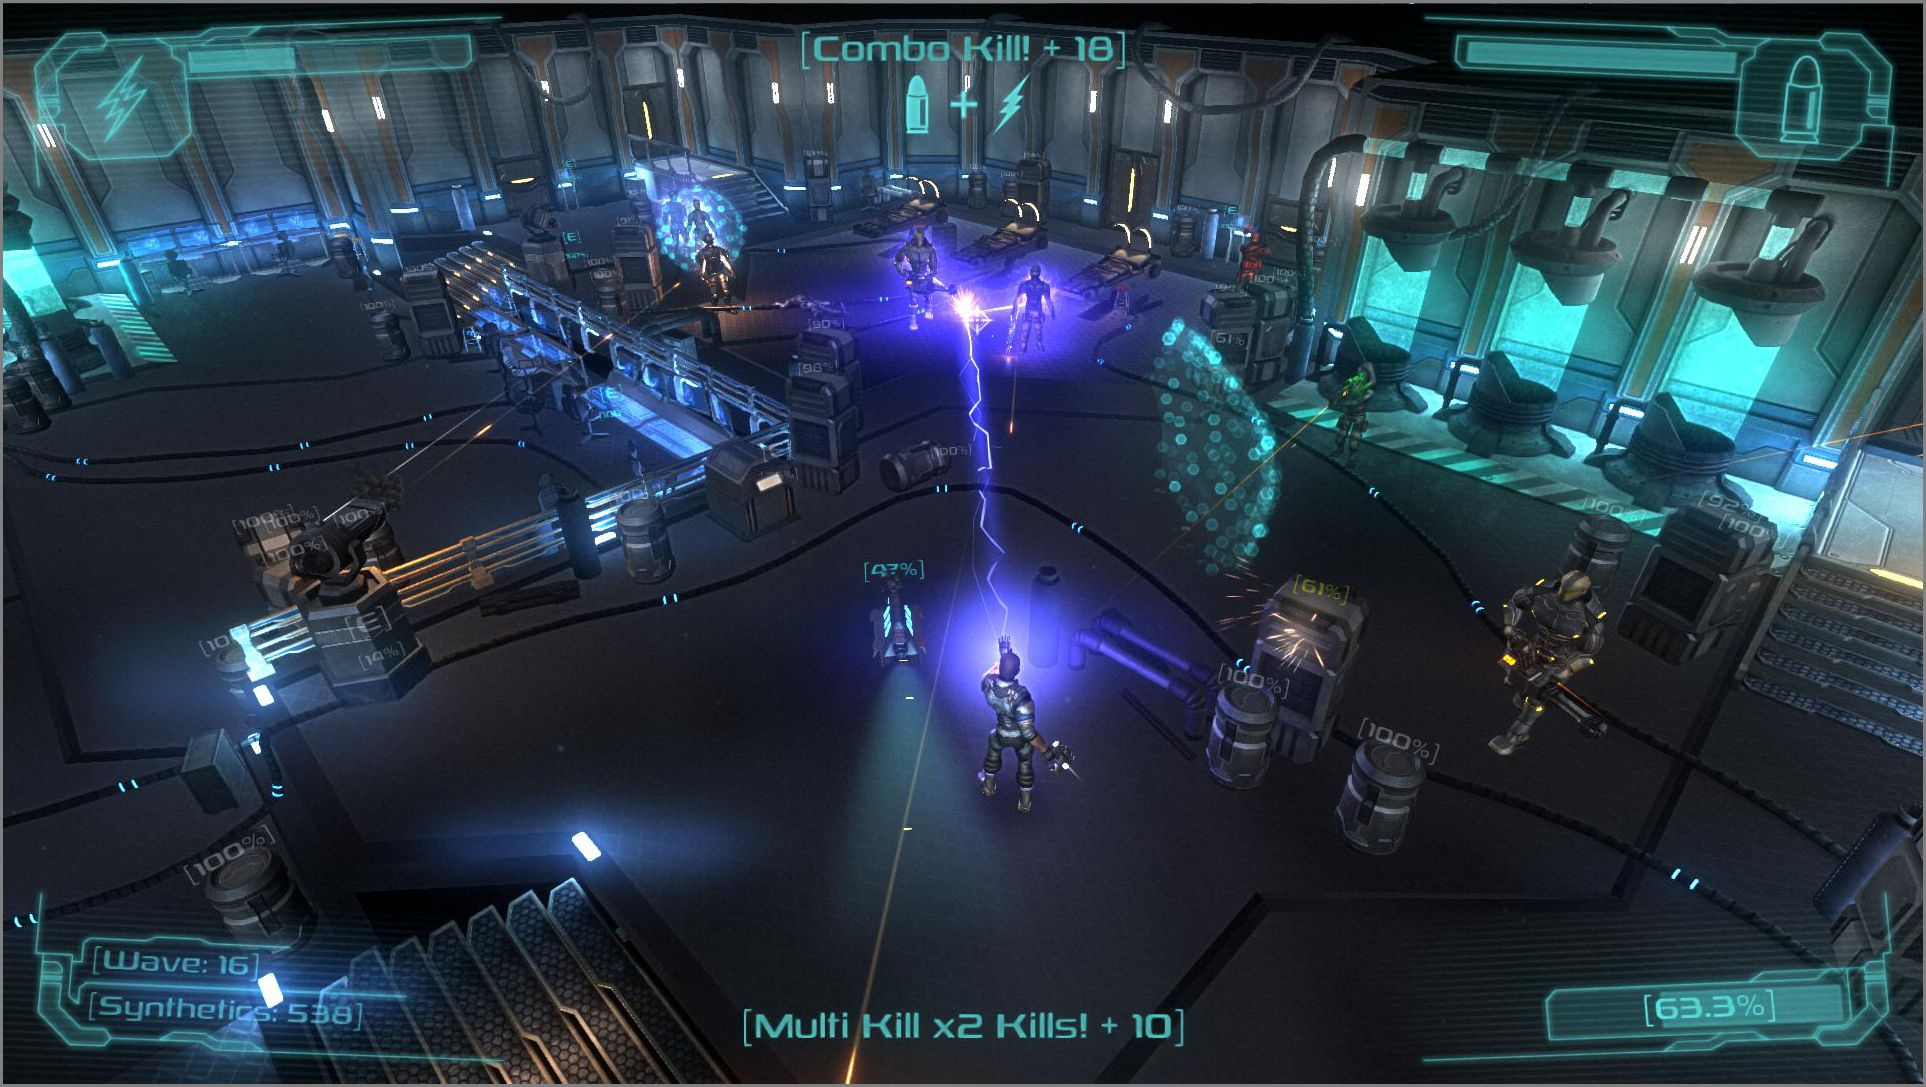 Subject 9 (shooter) http://steamcommunity.com/sharedfiles/filedetails/?id=160484802